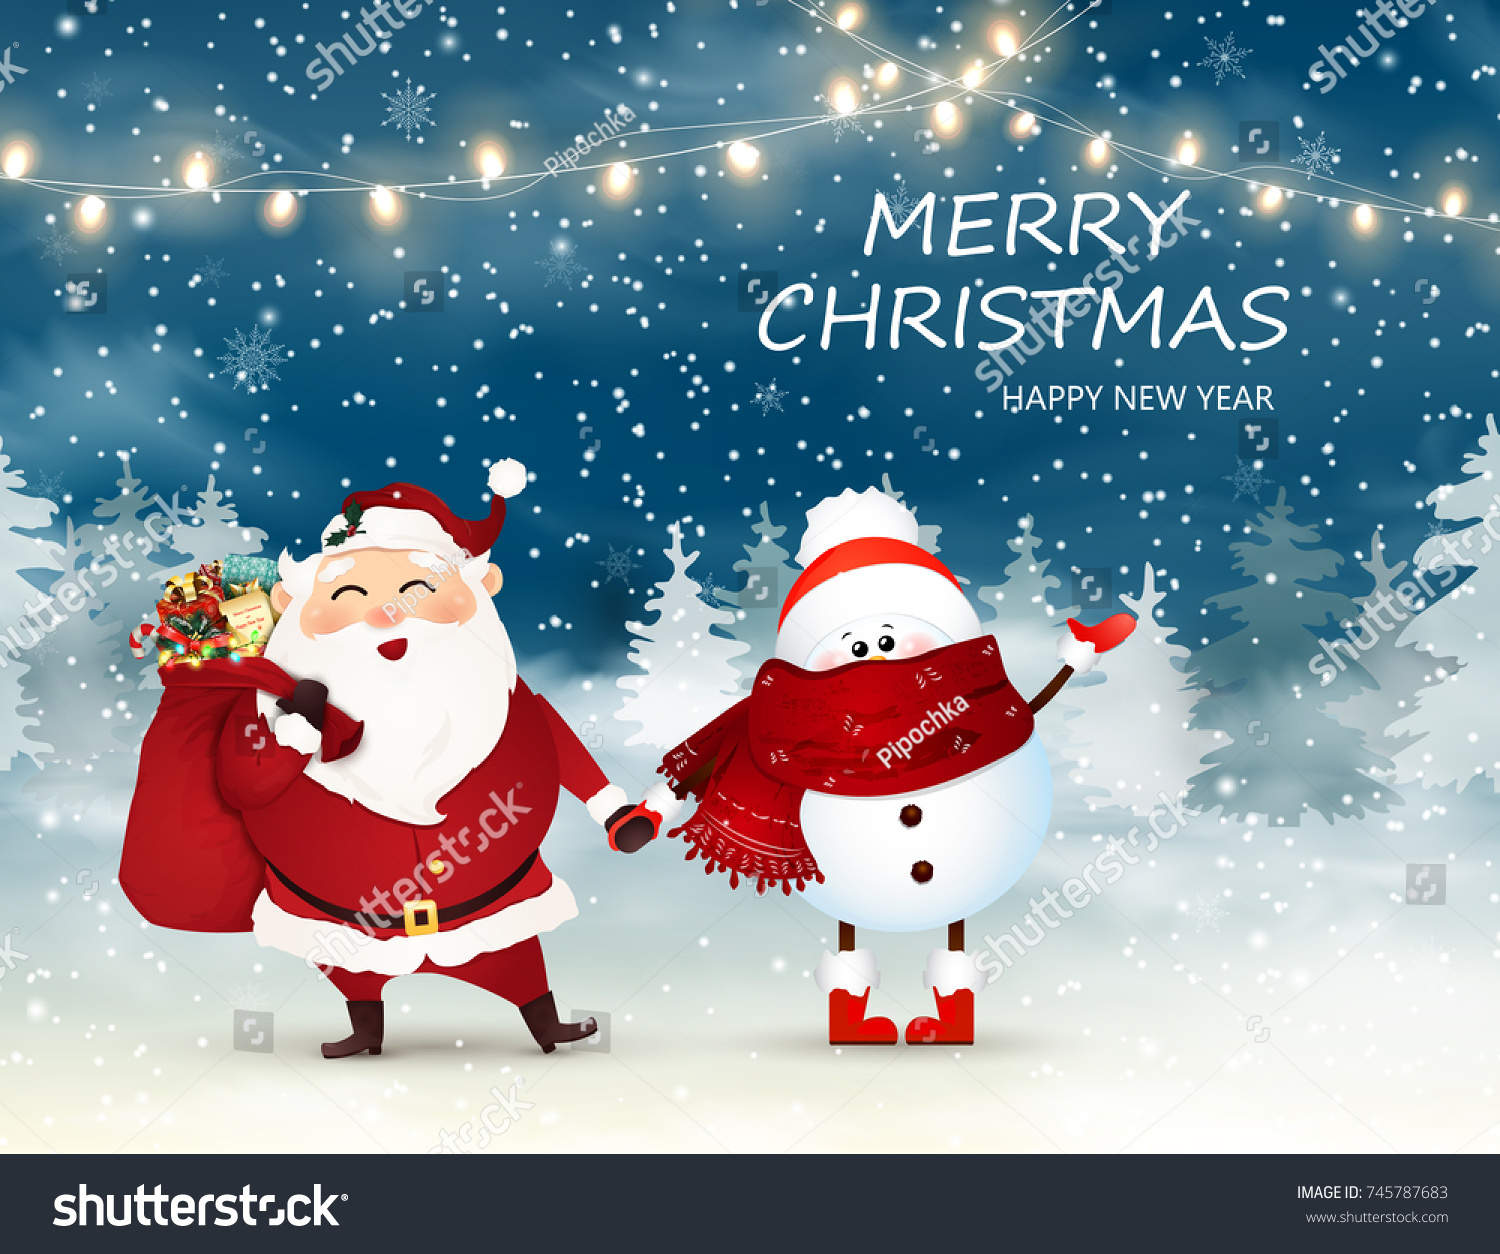 Merry Christmas Happy New Year Cute Stock Vector 745787683 ...